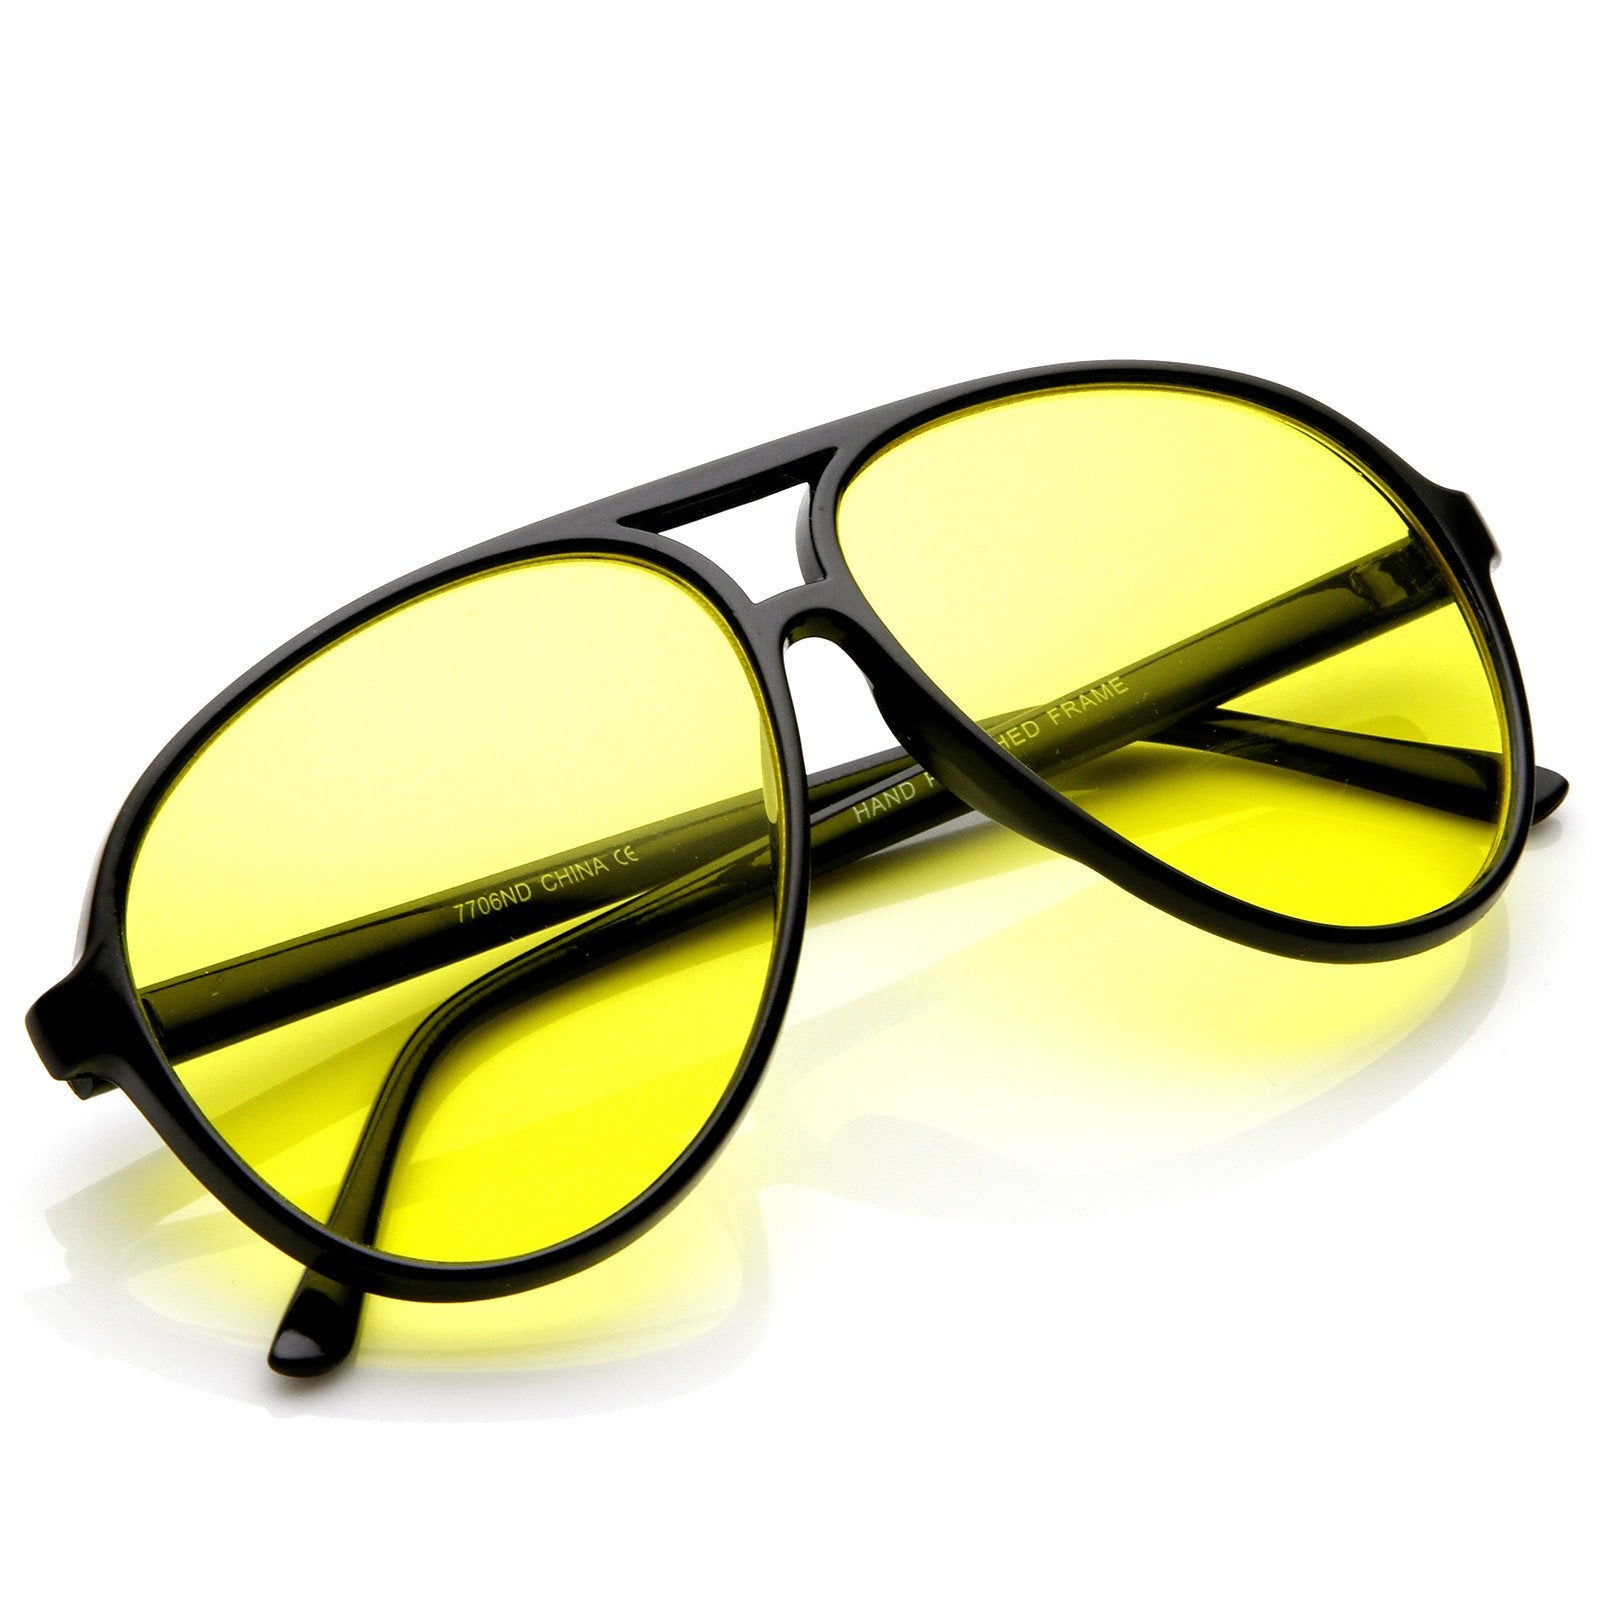 eb747f4c263 Retro 1980s Aviator Yellow Driving Lens Sunglasses - zeroUV